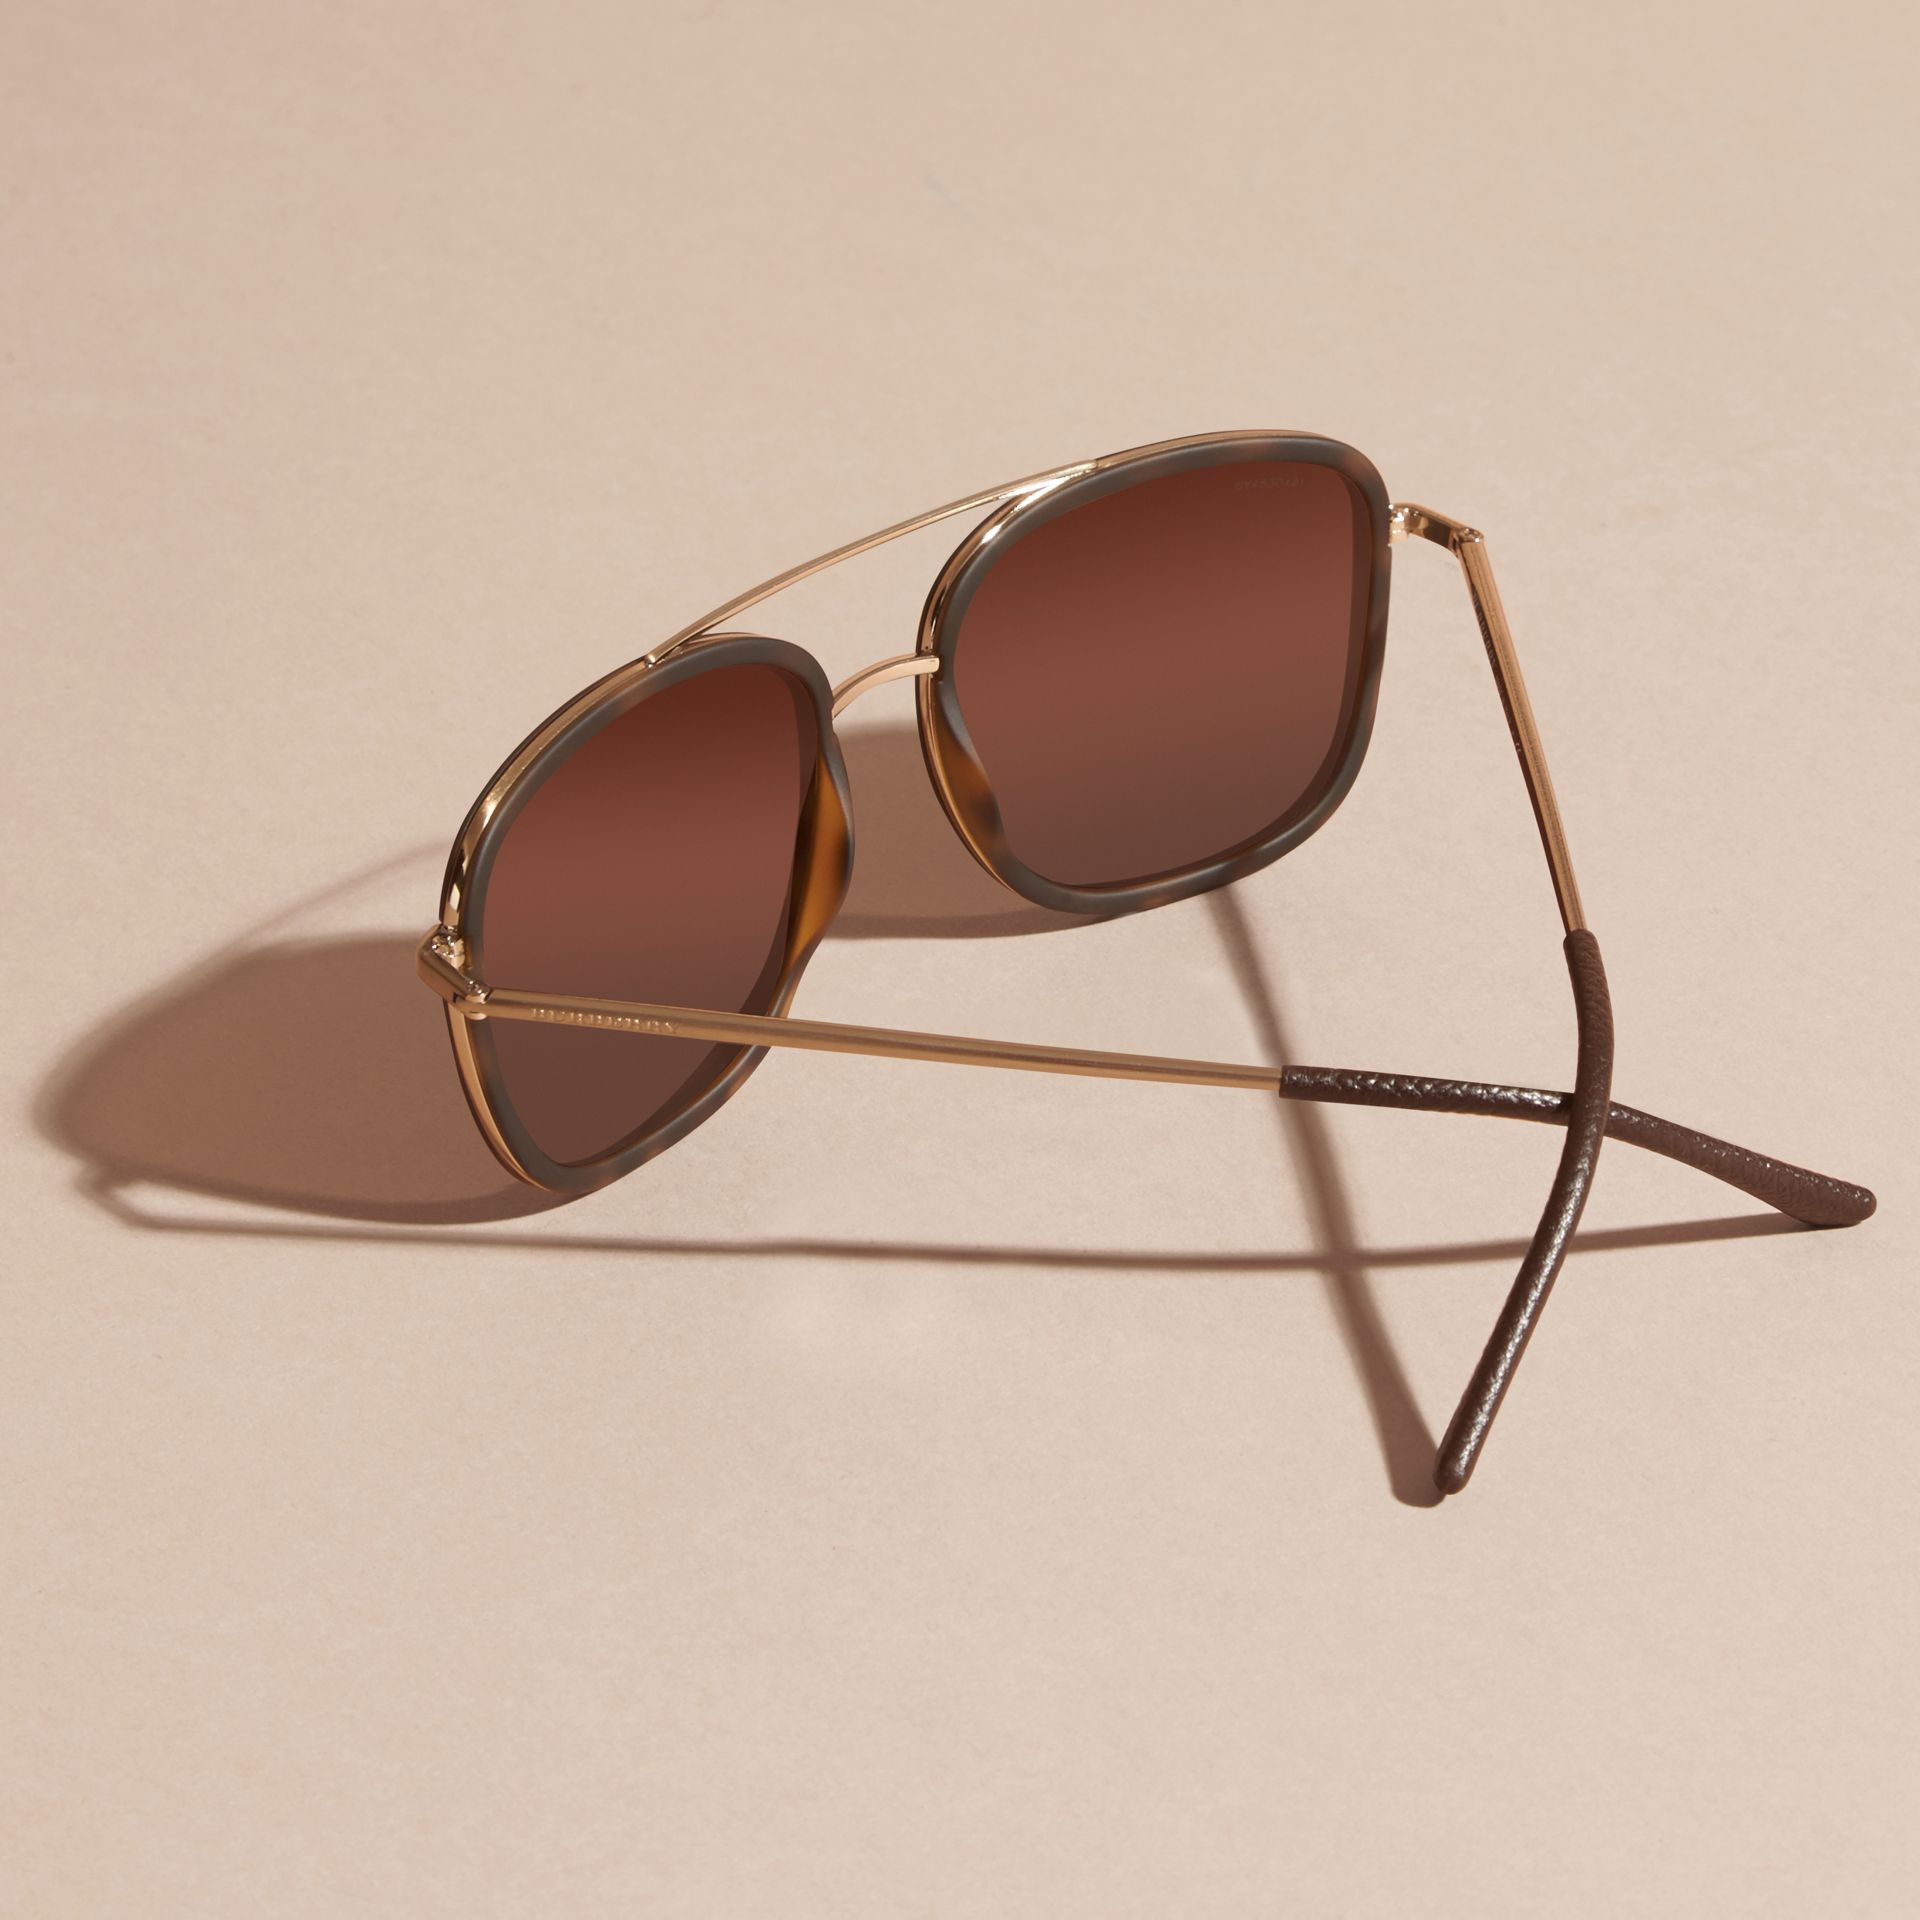 Tortoise shell Square Frame Acetate and Leather Sunglasses Tortoise Shell - gallery image 3